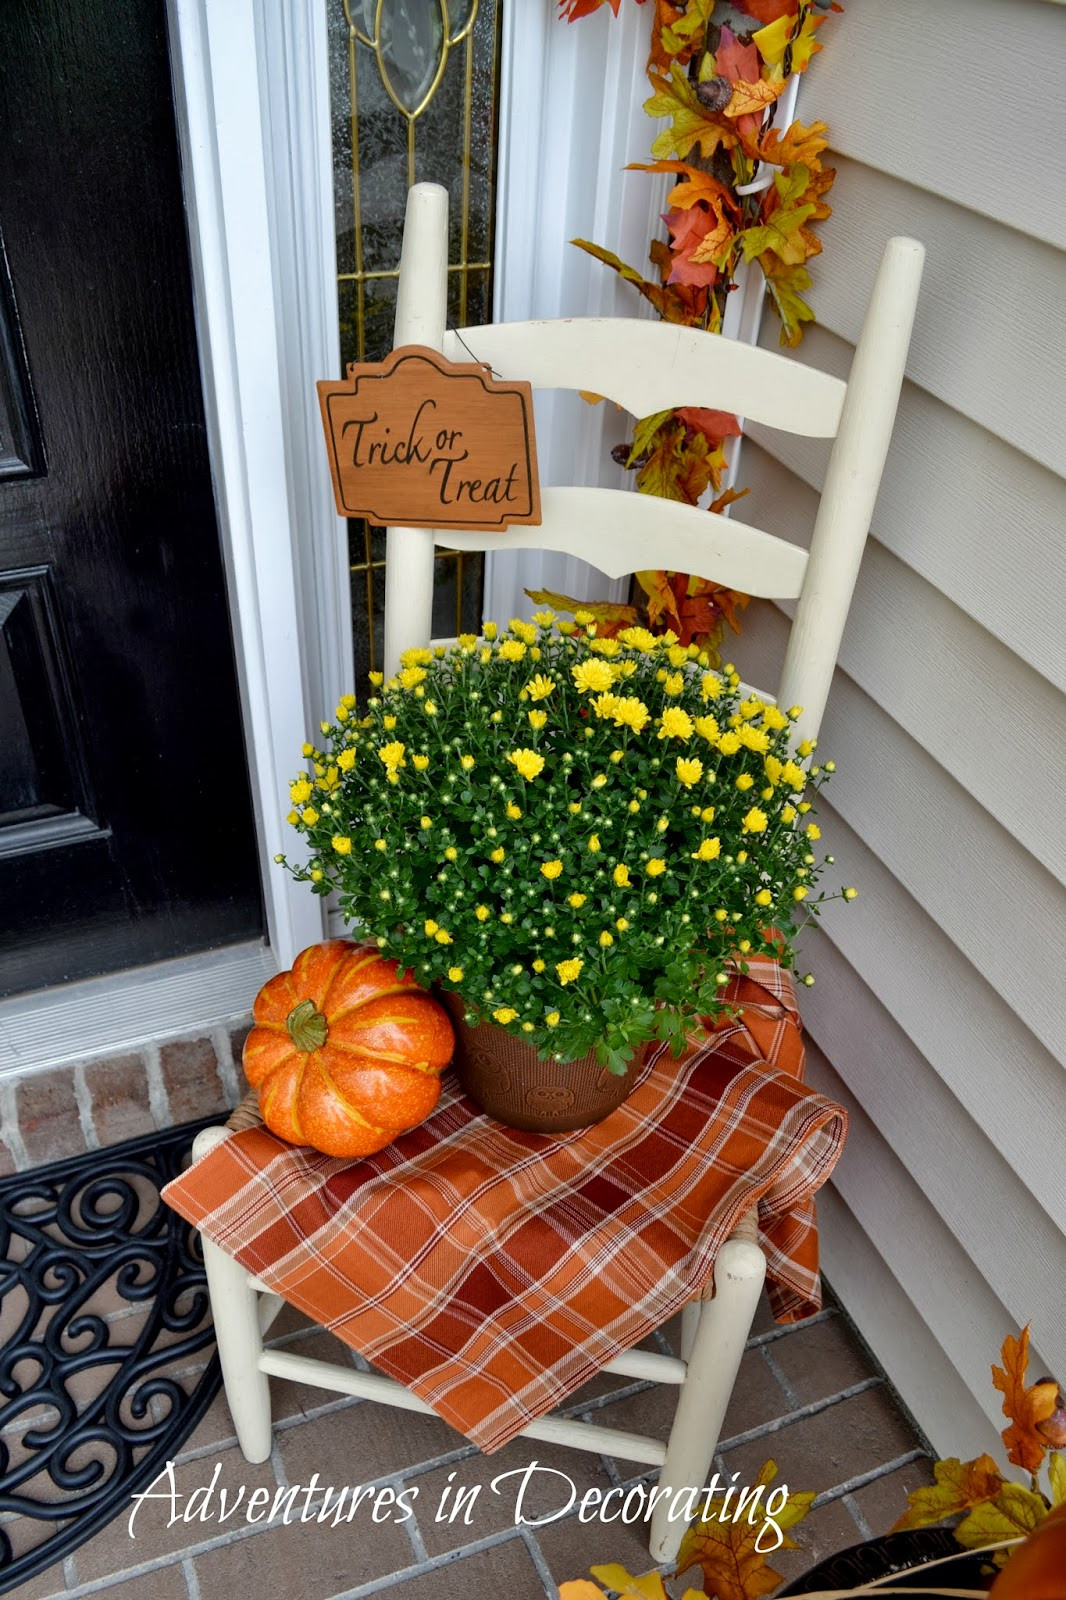 Fall Decorations Porch  Adventures in Decorating Our Fall Front Porch